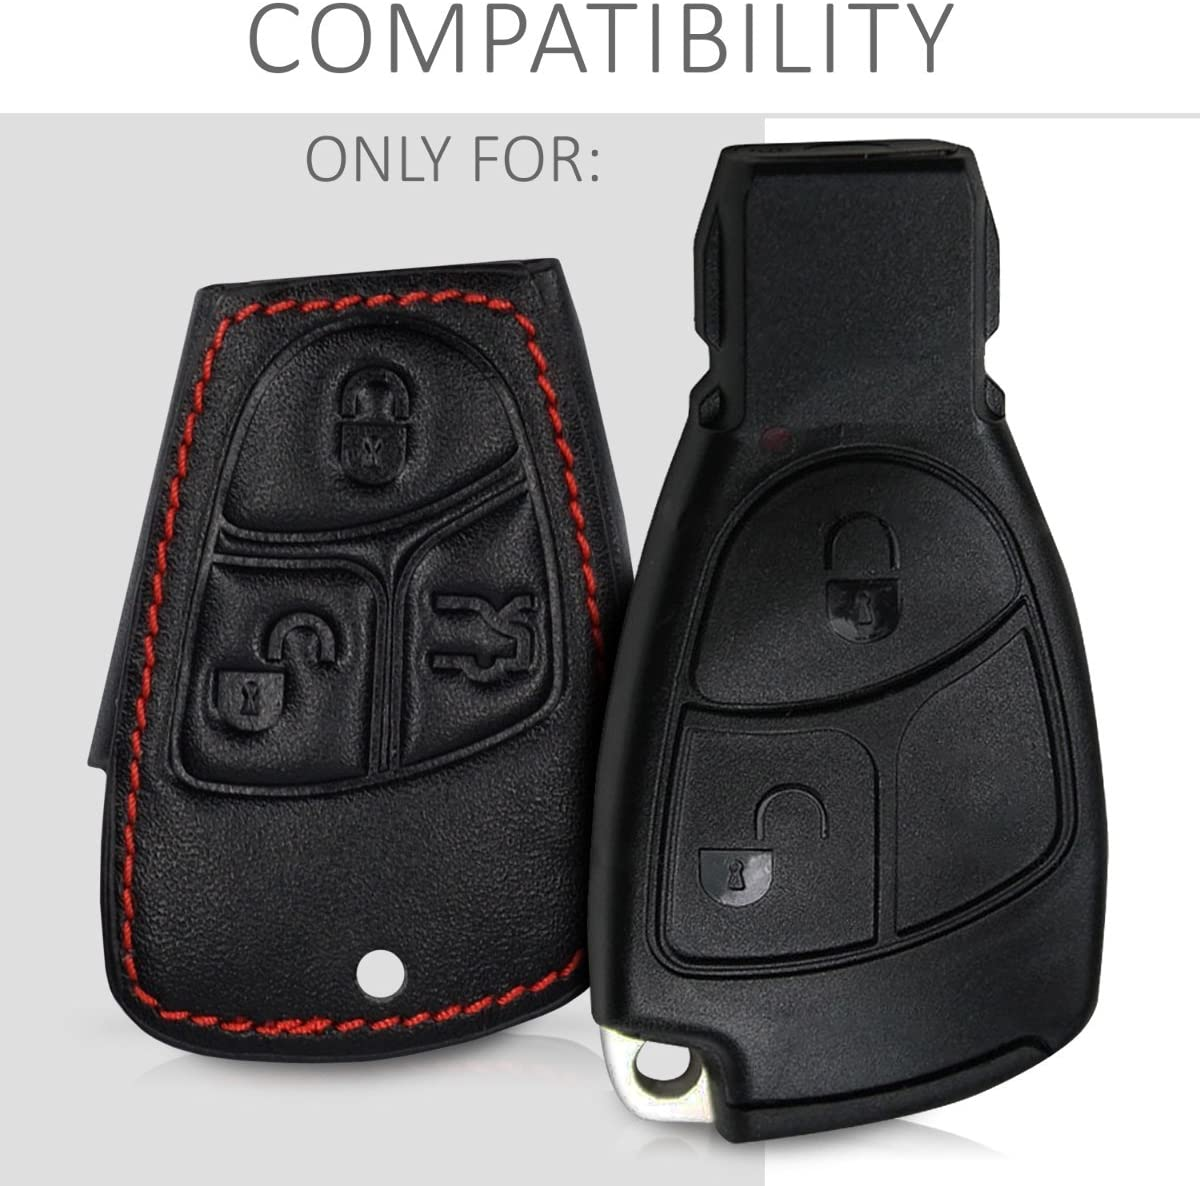 PU Leather Protective Key Fob Cover kwmobile Car Key Cover Compatible with Mercedes-Benz 2-3 Button Car Key Black